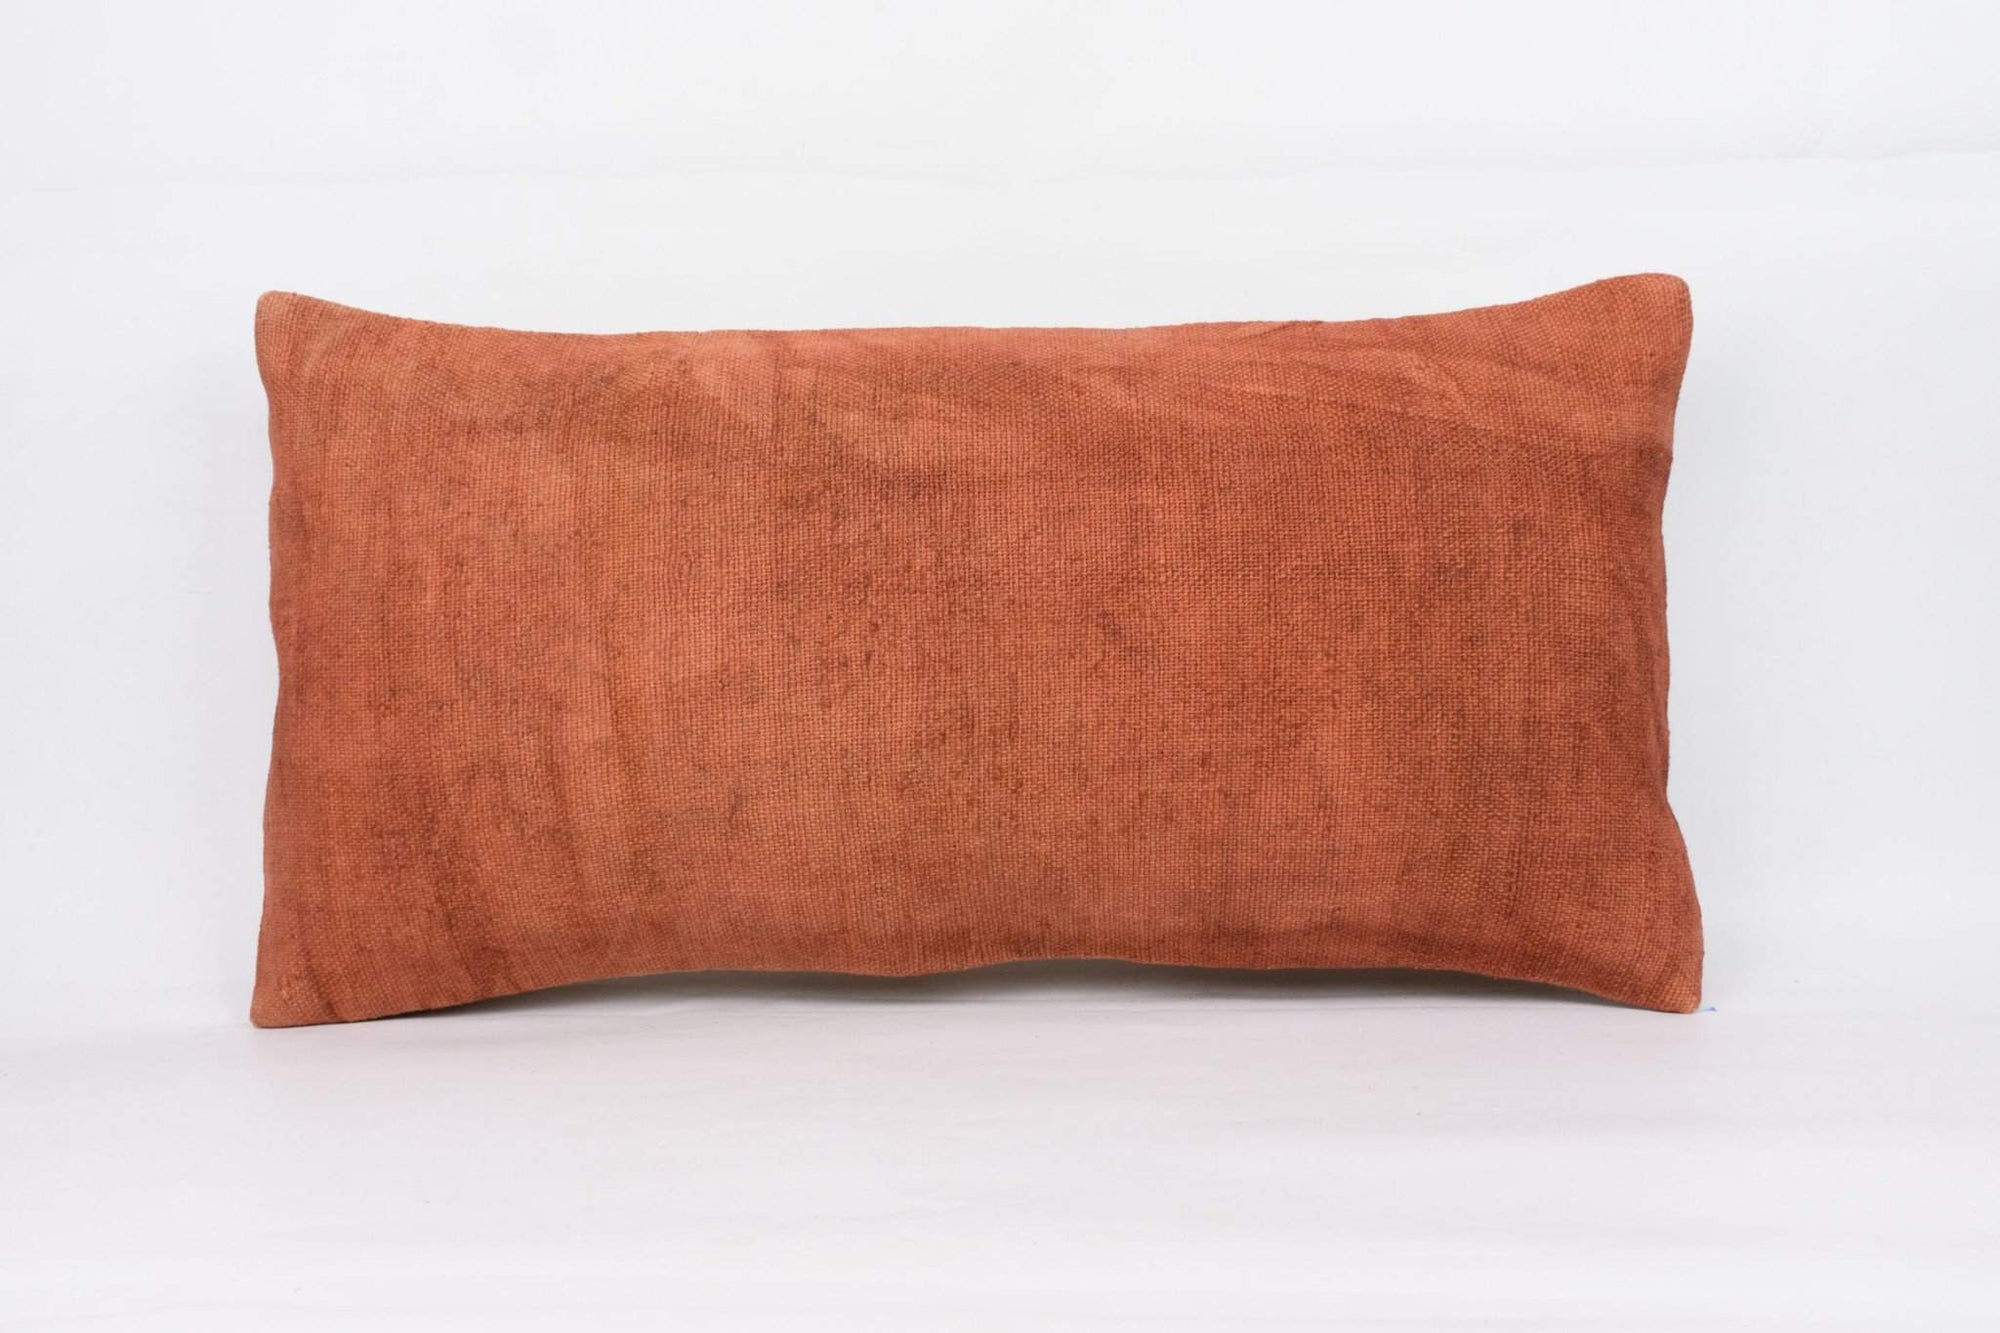 Plain Brown Kilim Pillow Cover 12x24 4188 - kilimpillowstore  - 1